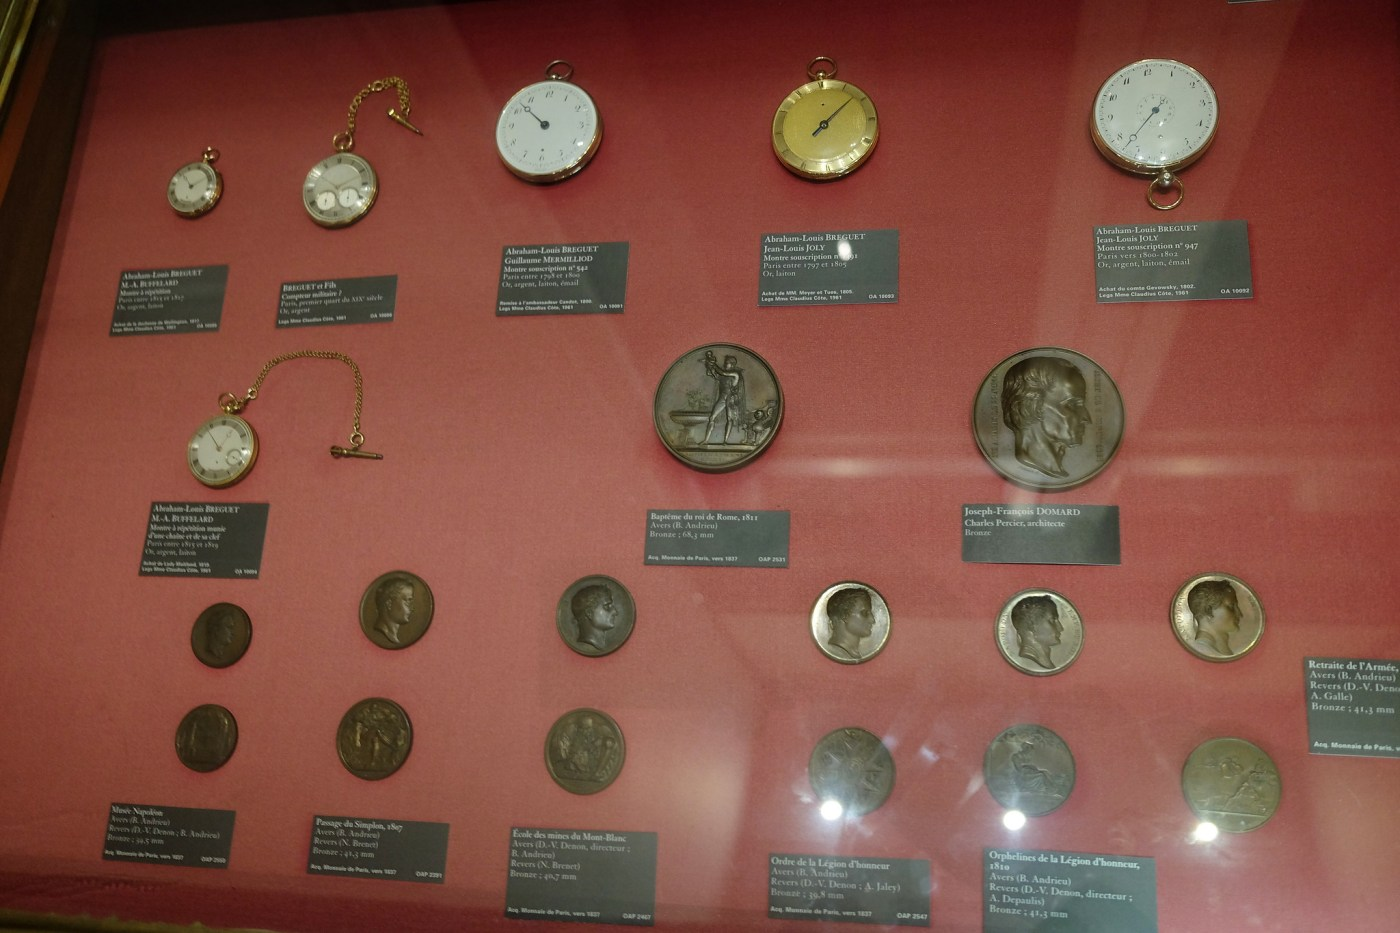 As the watchmaker to Royalty, such as Napoleon Bonaparte, Breguet timepieces shown here are on display at the Louvre